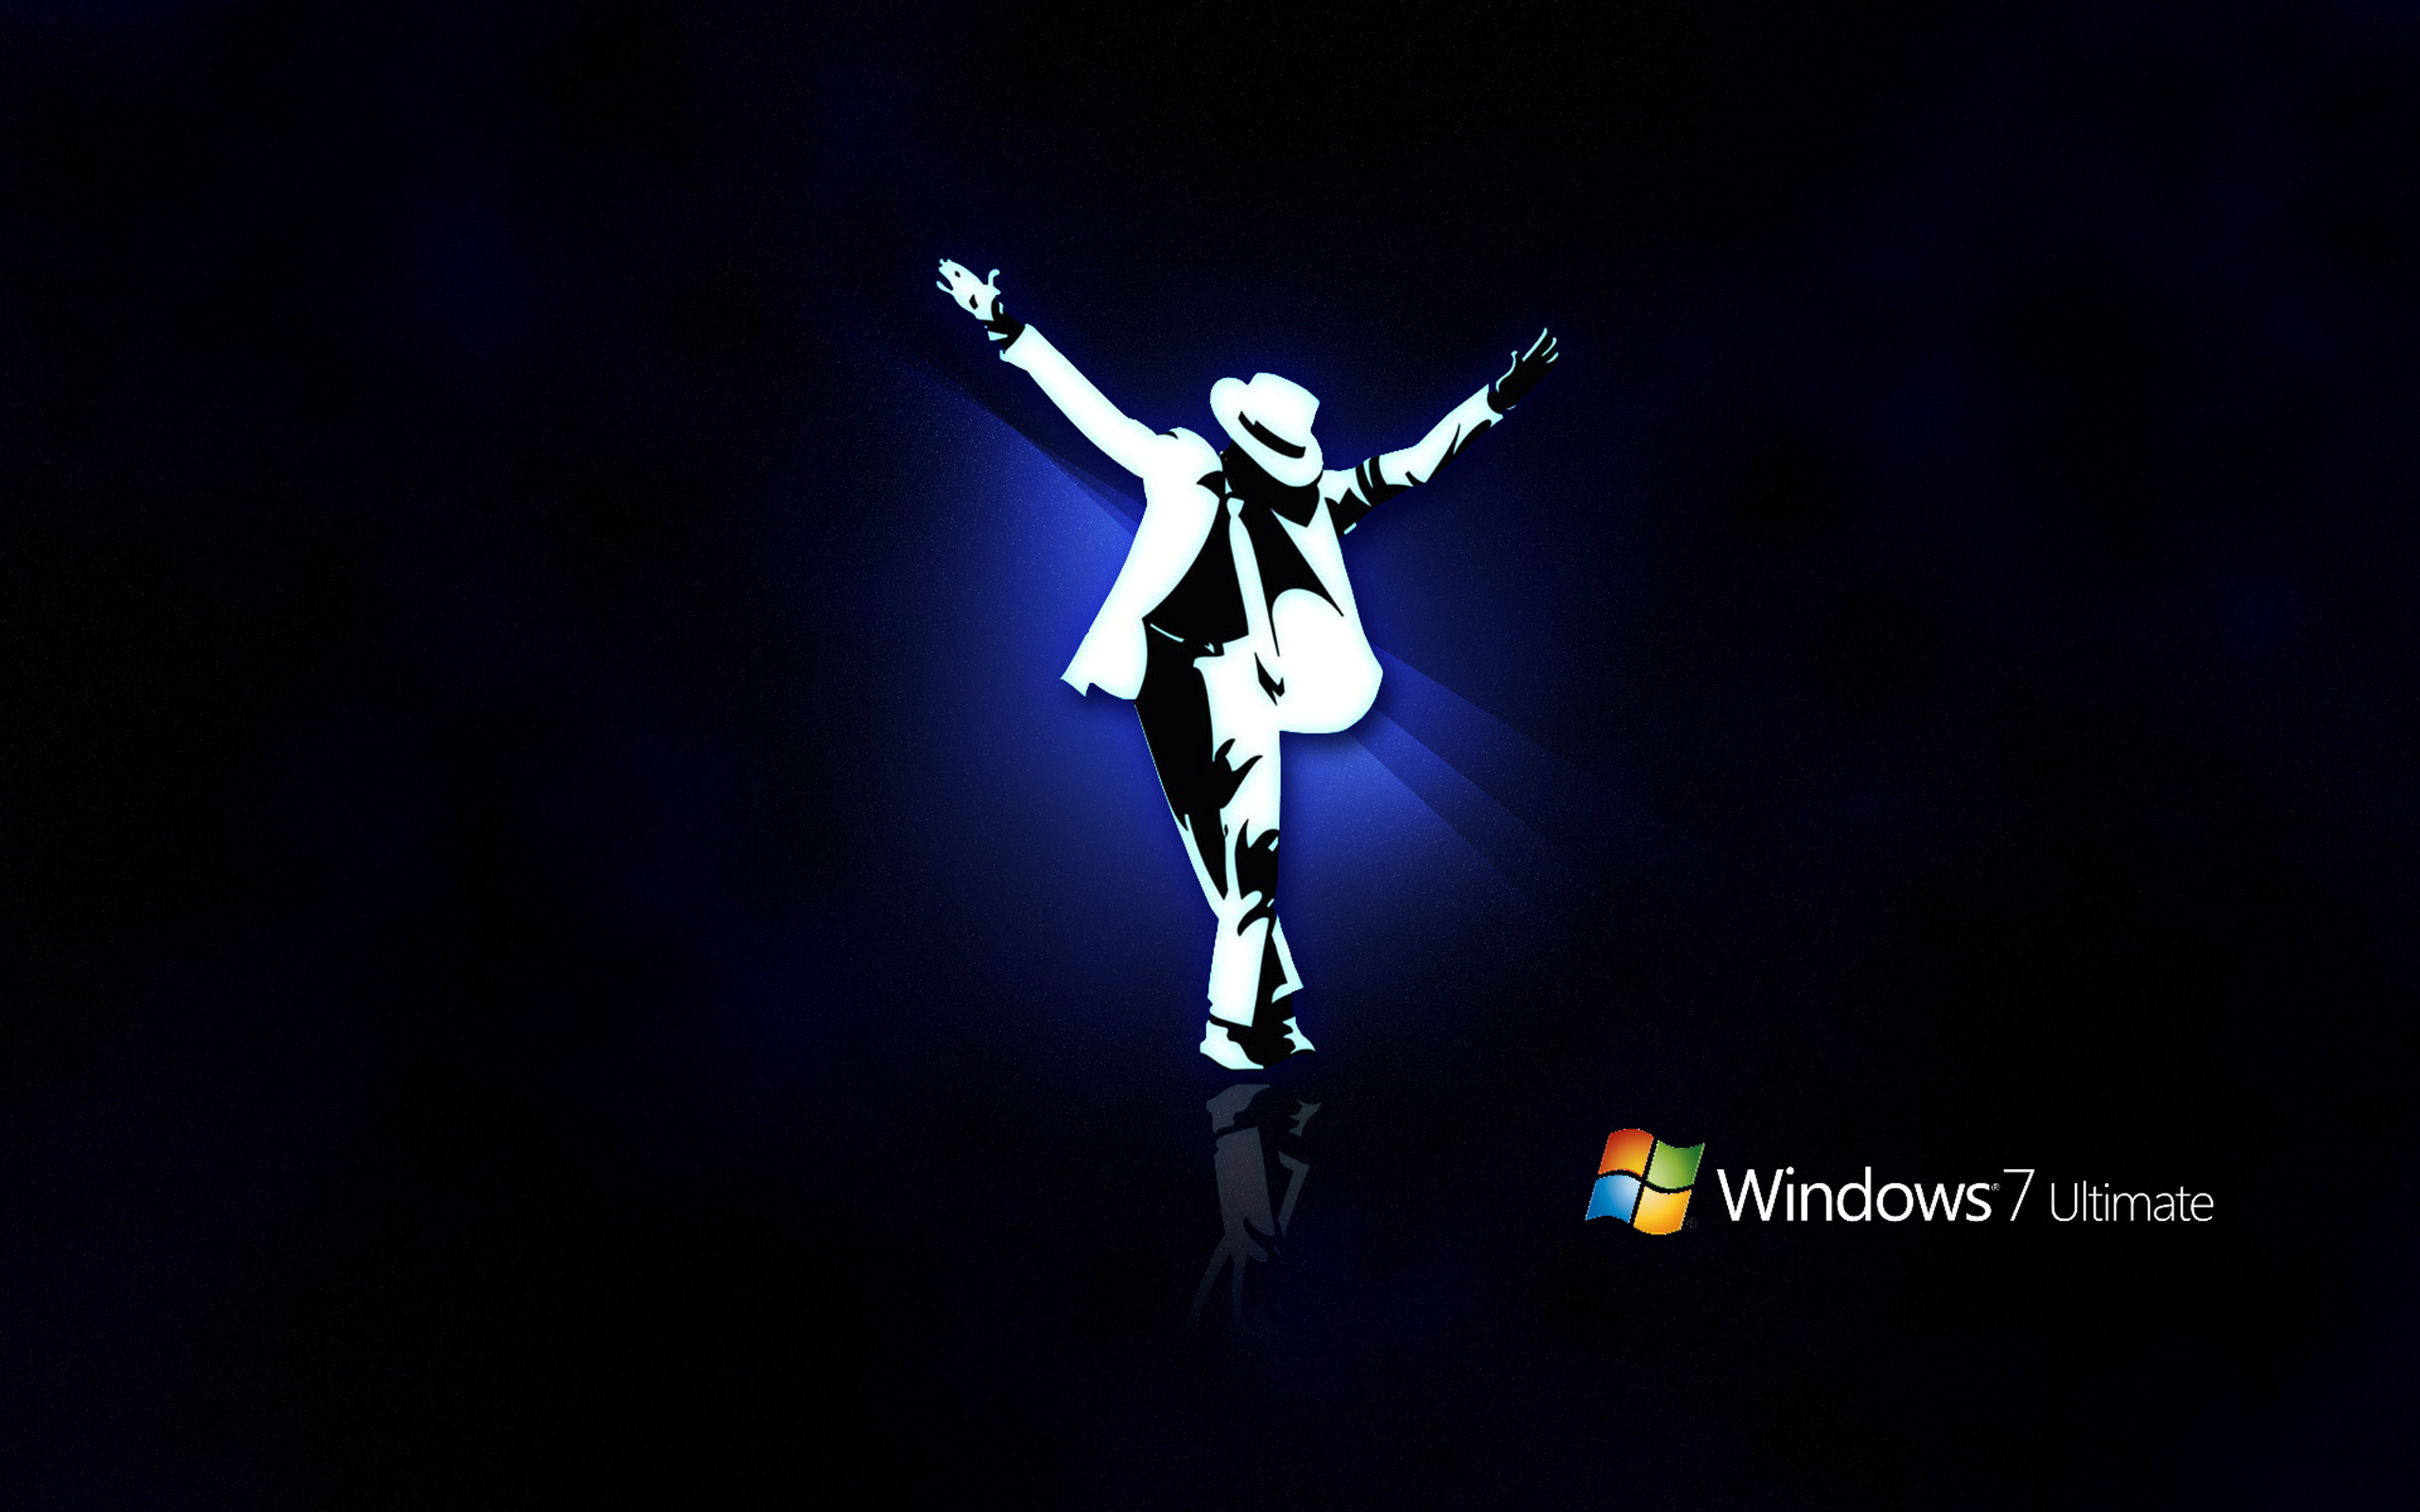 2560x1600 Free Michael Jackson Windows 7 Ultimate, computer desktop wallpapers,  pictures, images